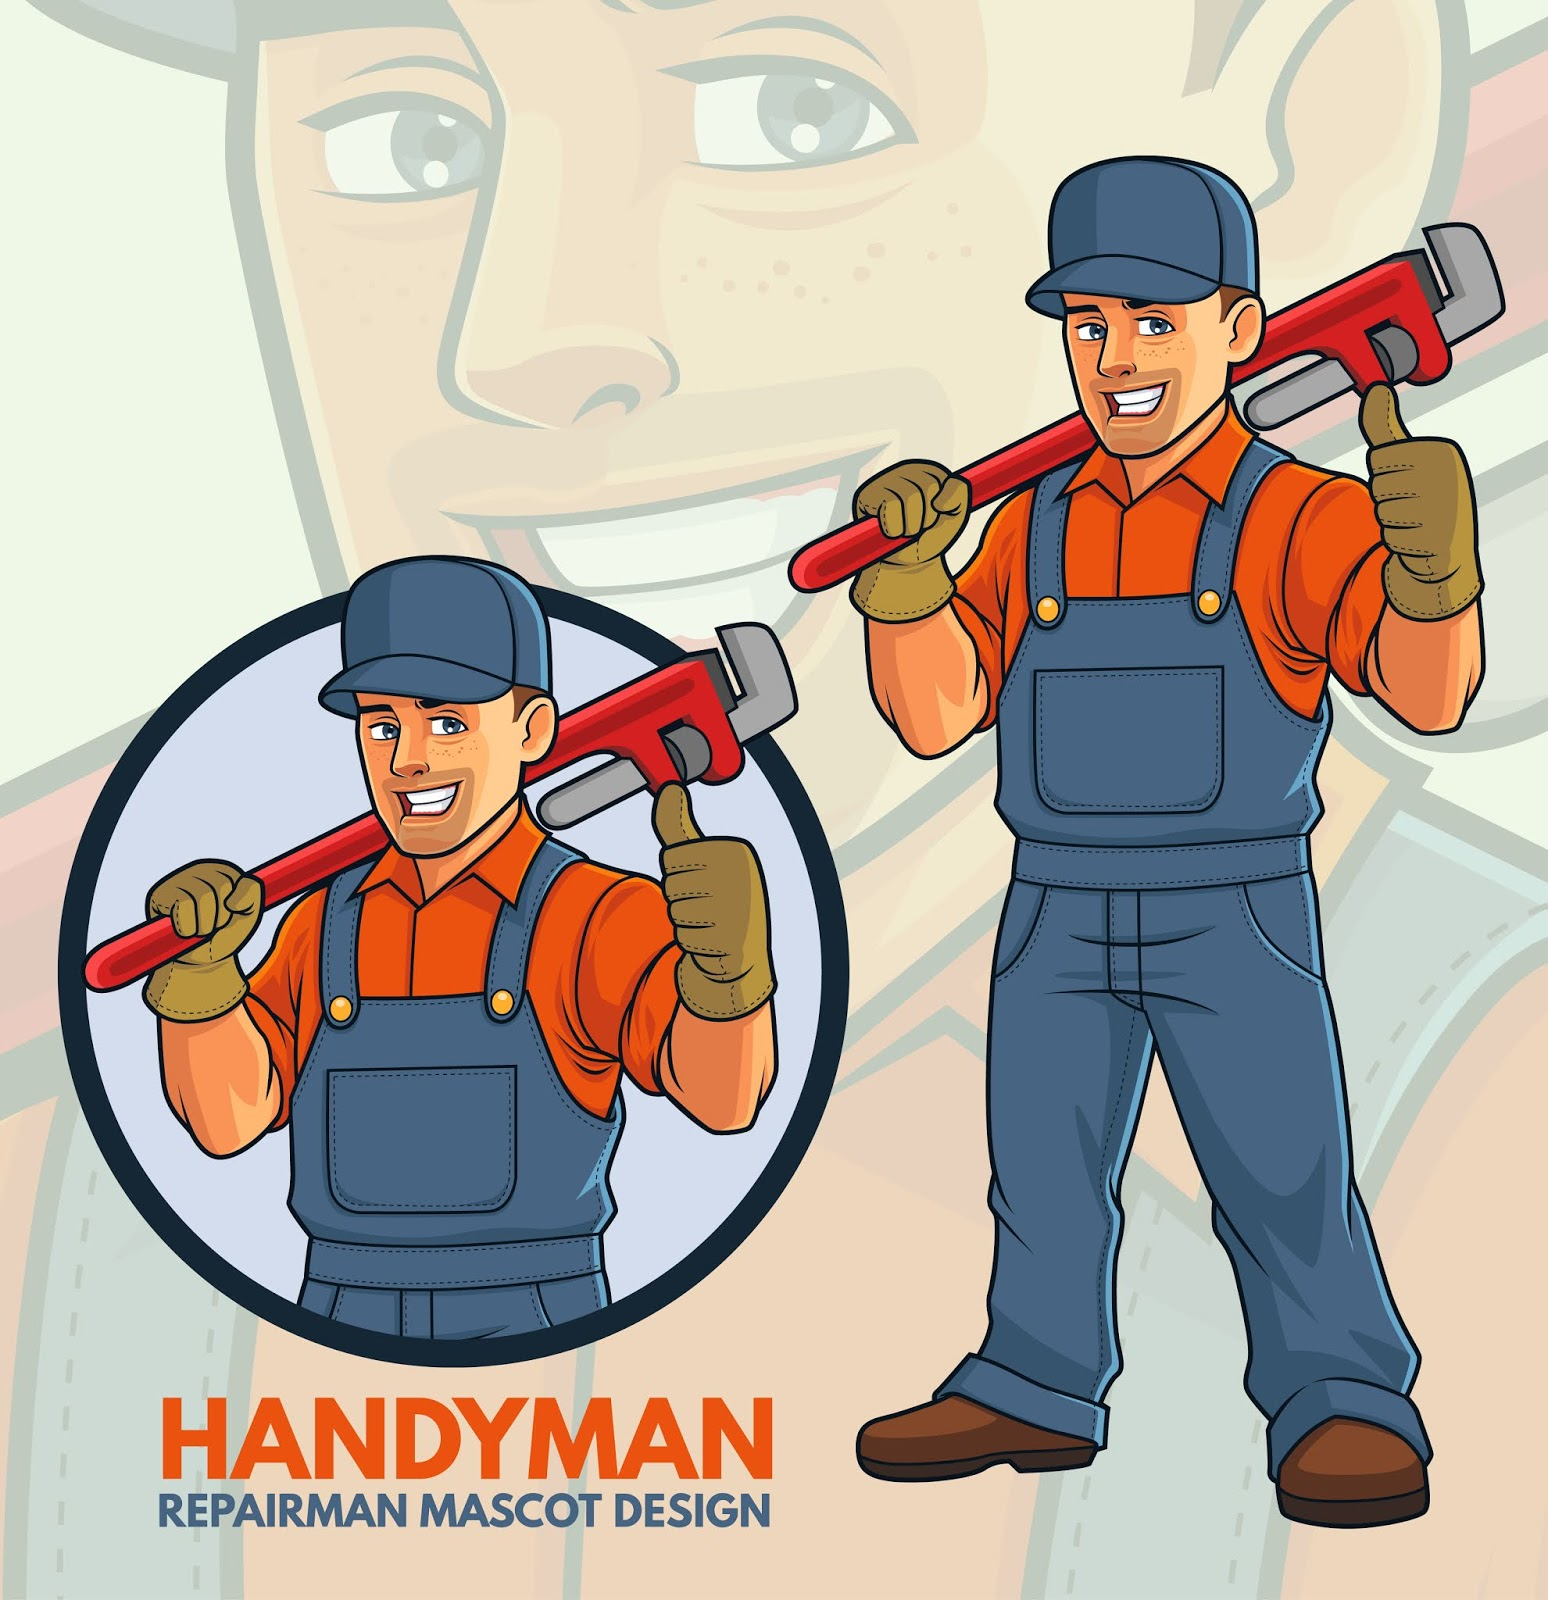 Repairman Mascot Design Free Download Vector CDR, AI, EPS and PNG Formats